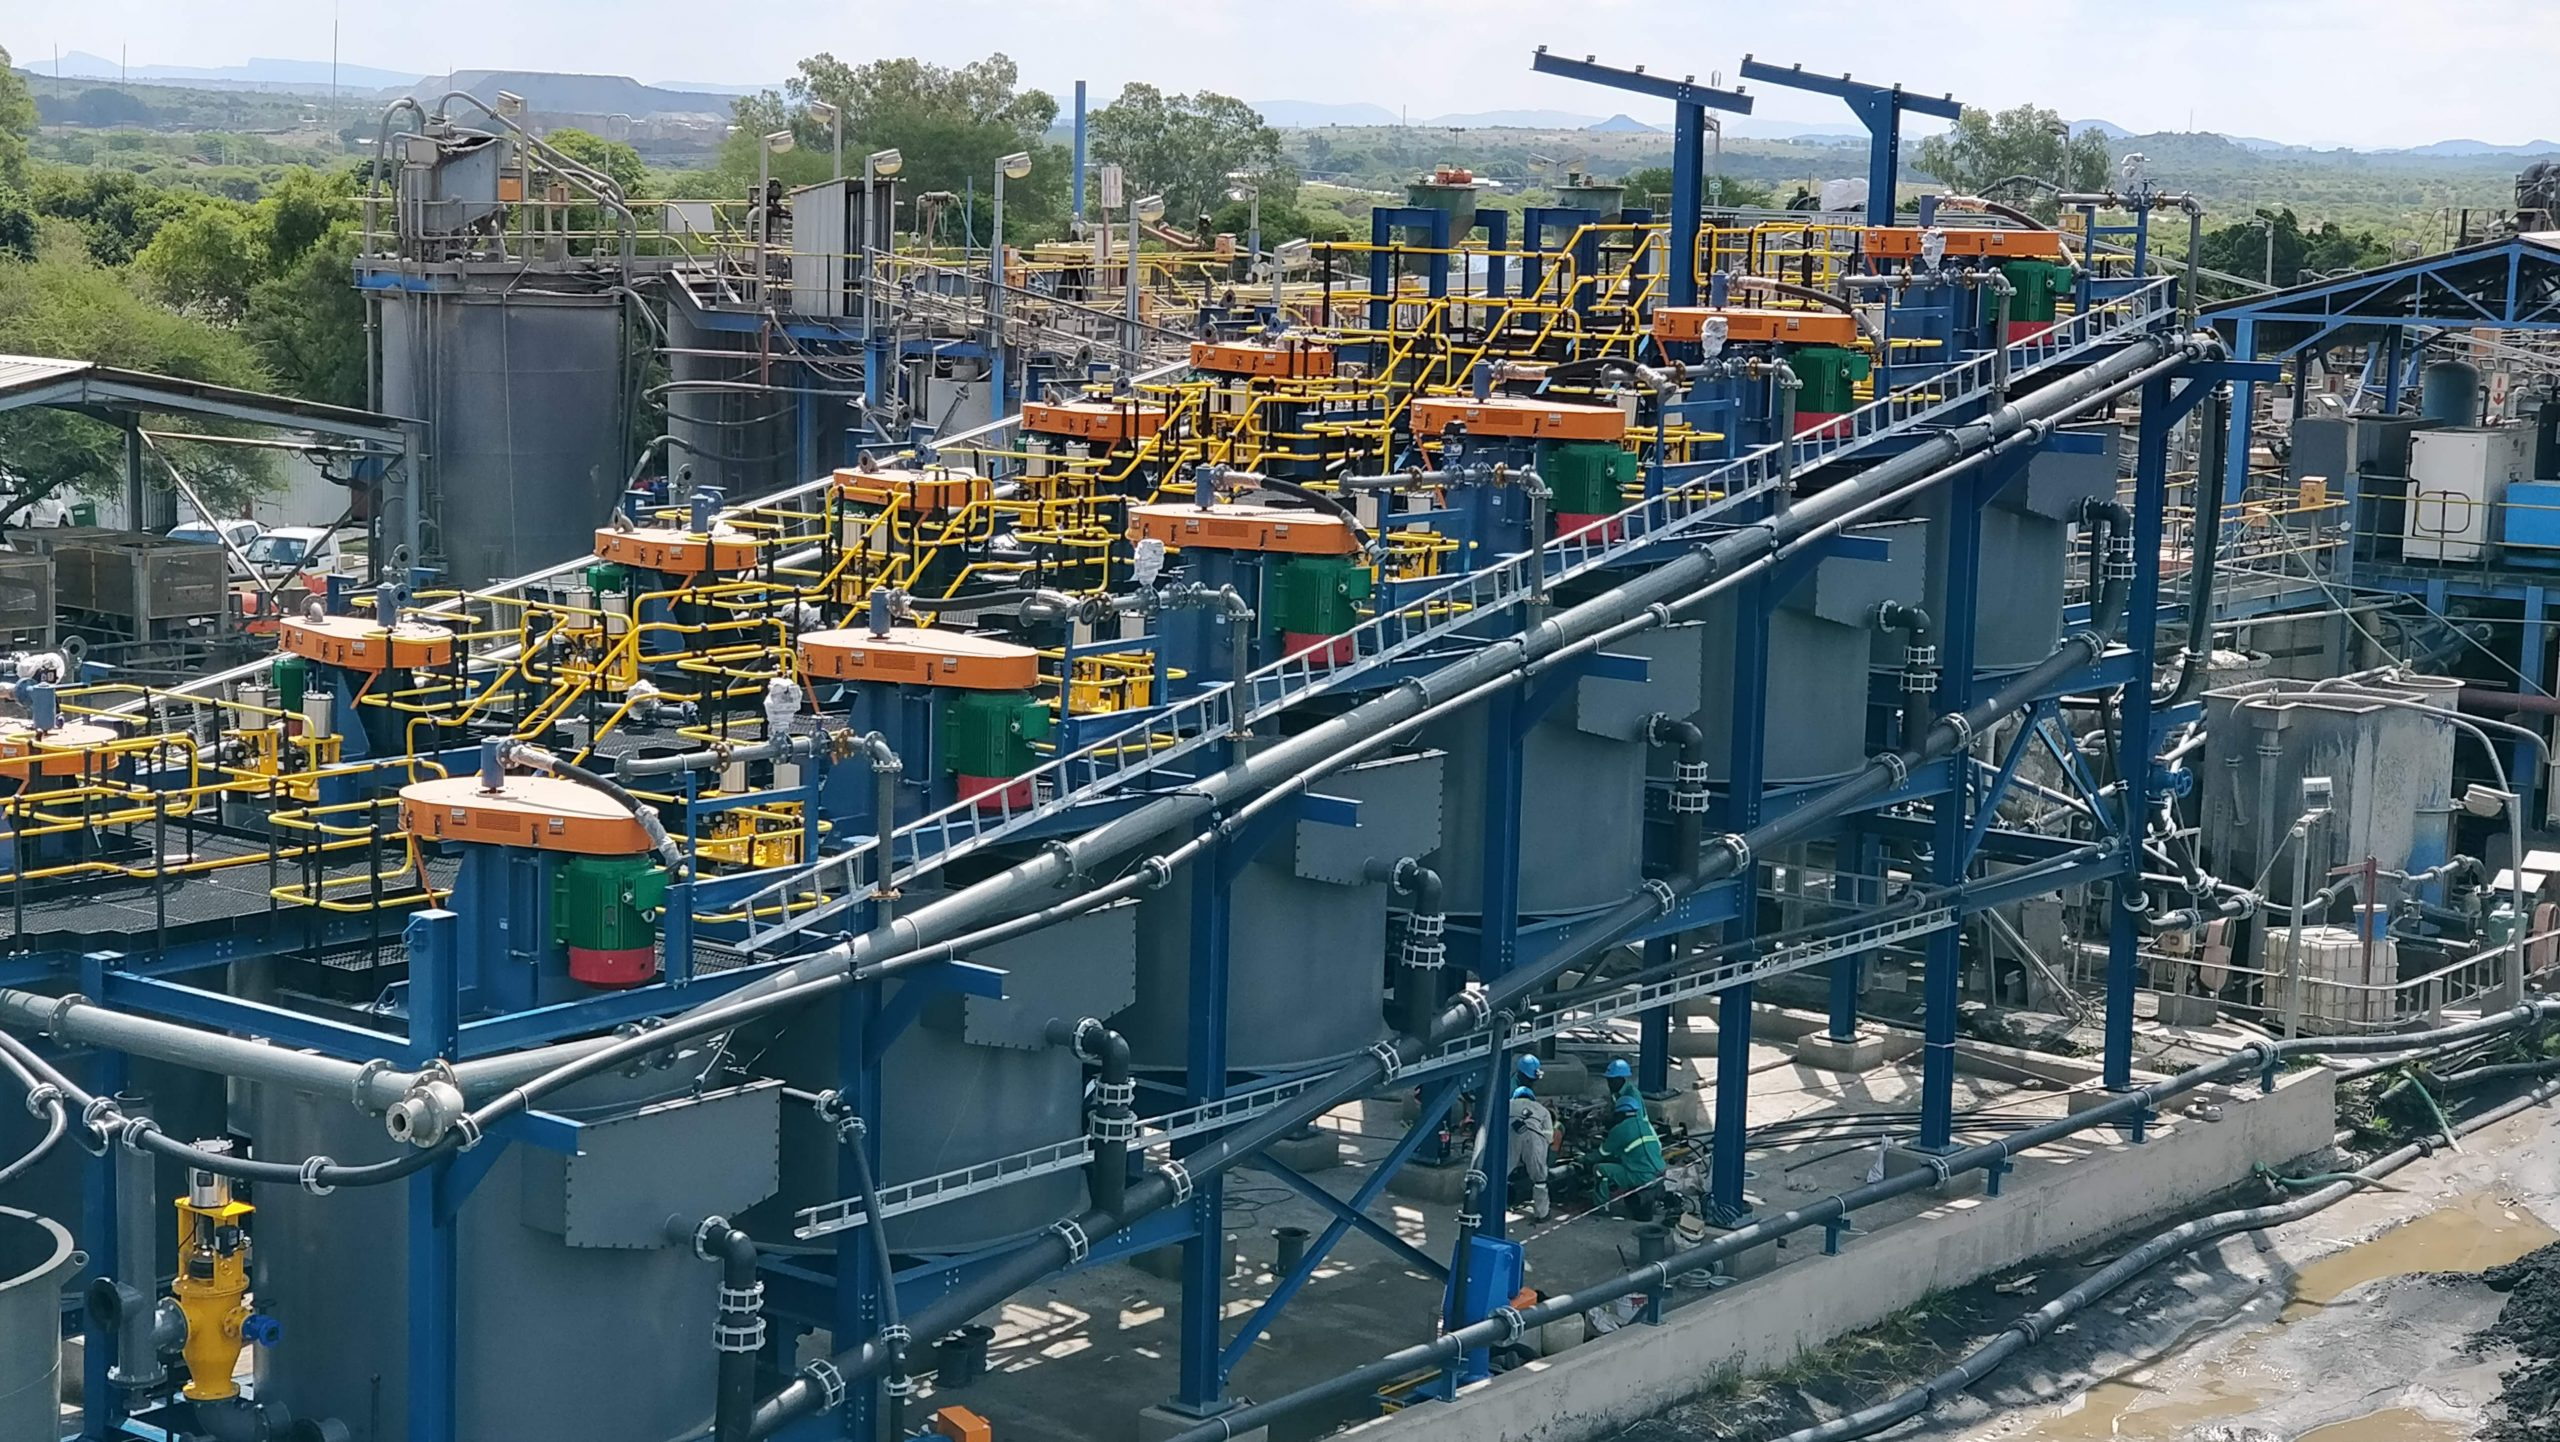 EXPERTS IN MINERAL PROCESSING